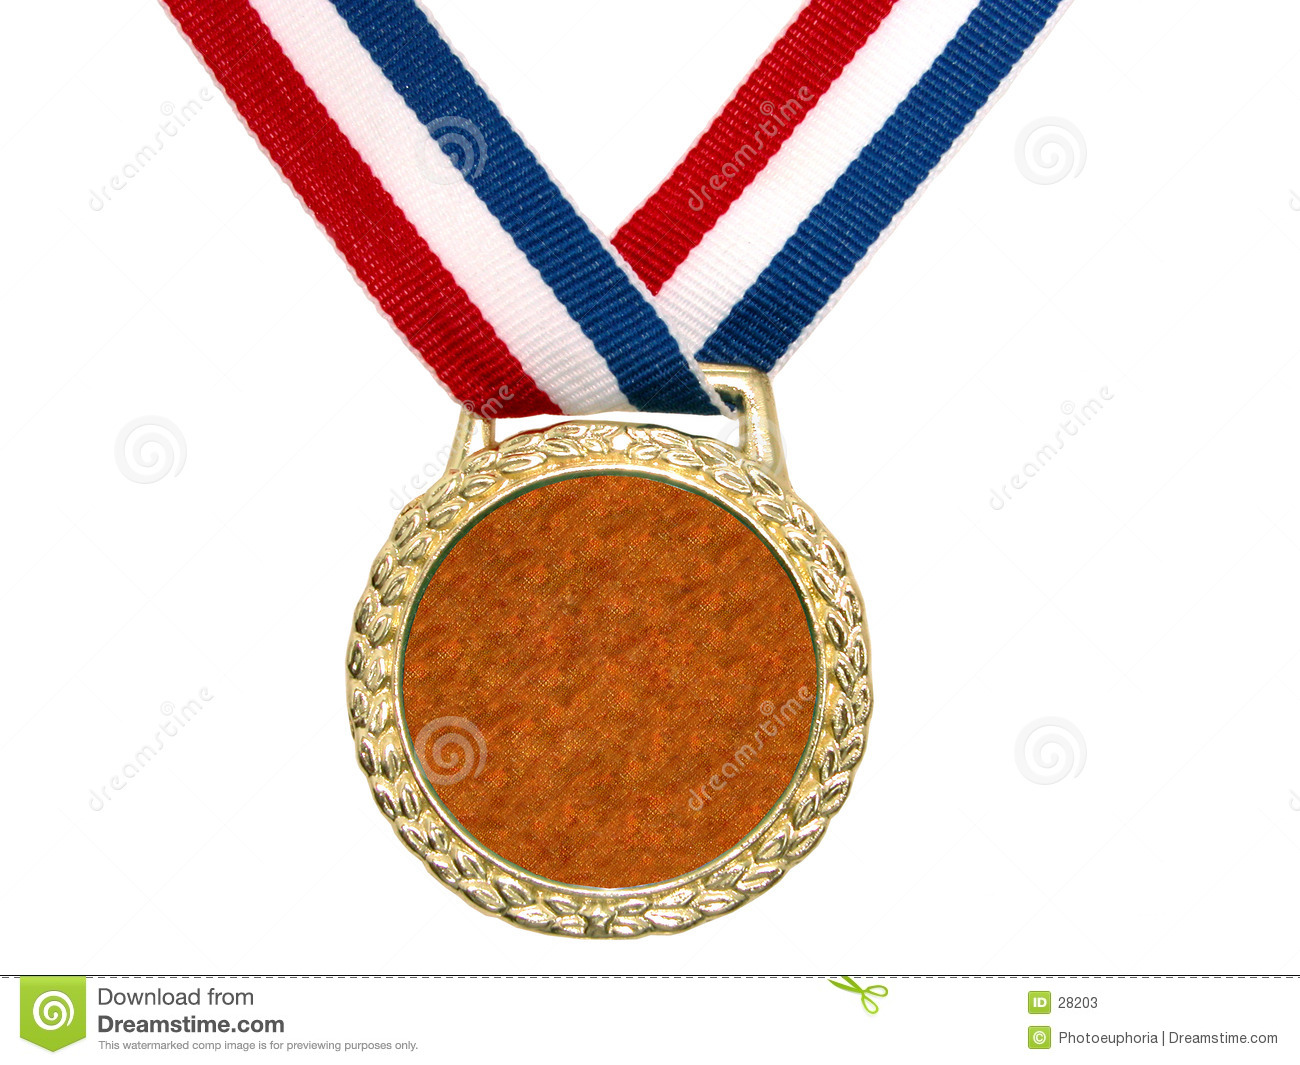 Shiny Gold Medal (2 of 2)